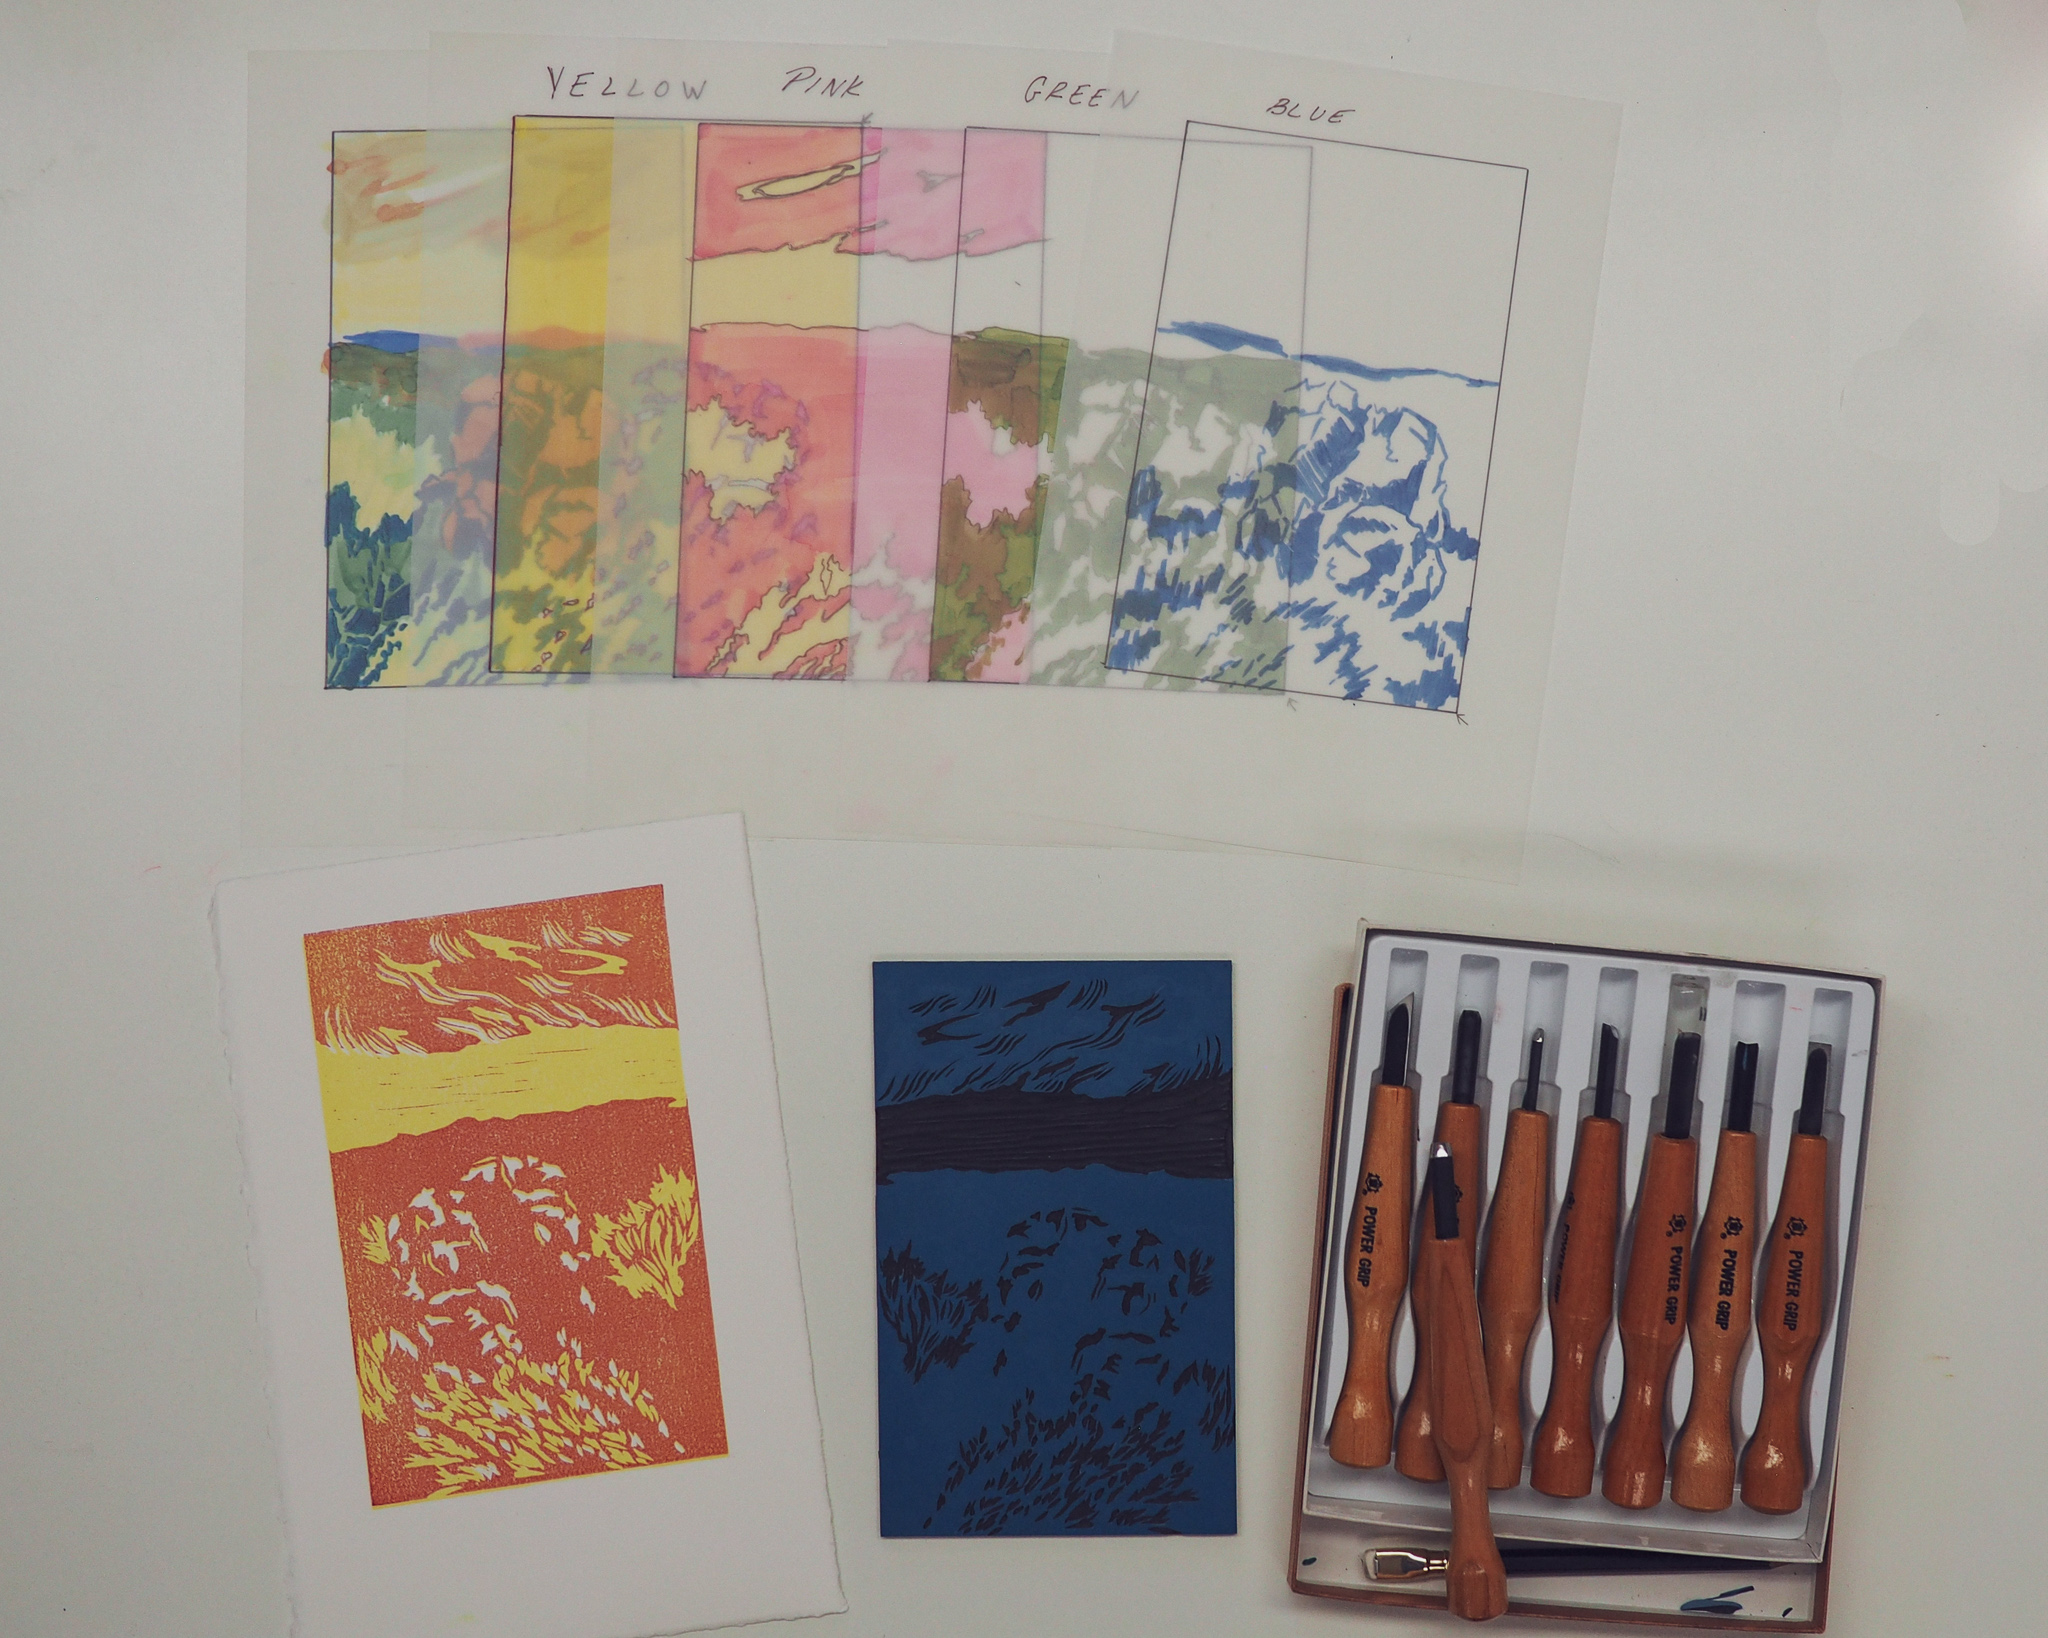 Example of color flats, in-process relief print, Lino-block, and carving tools